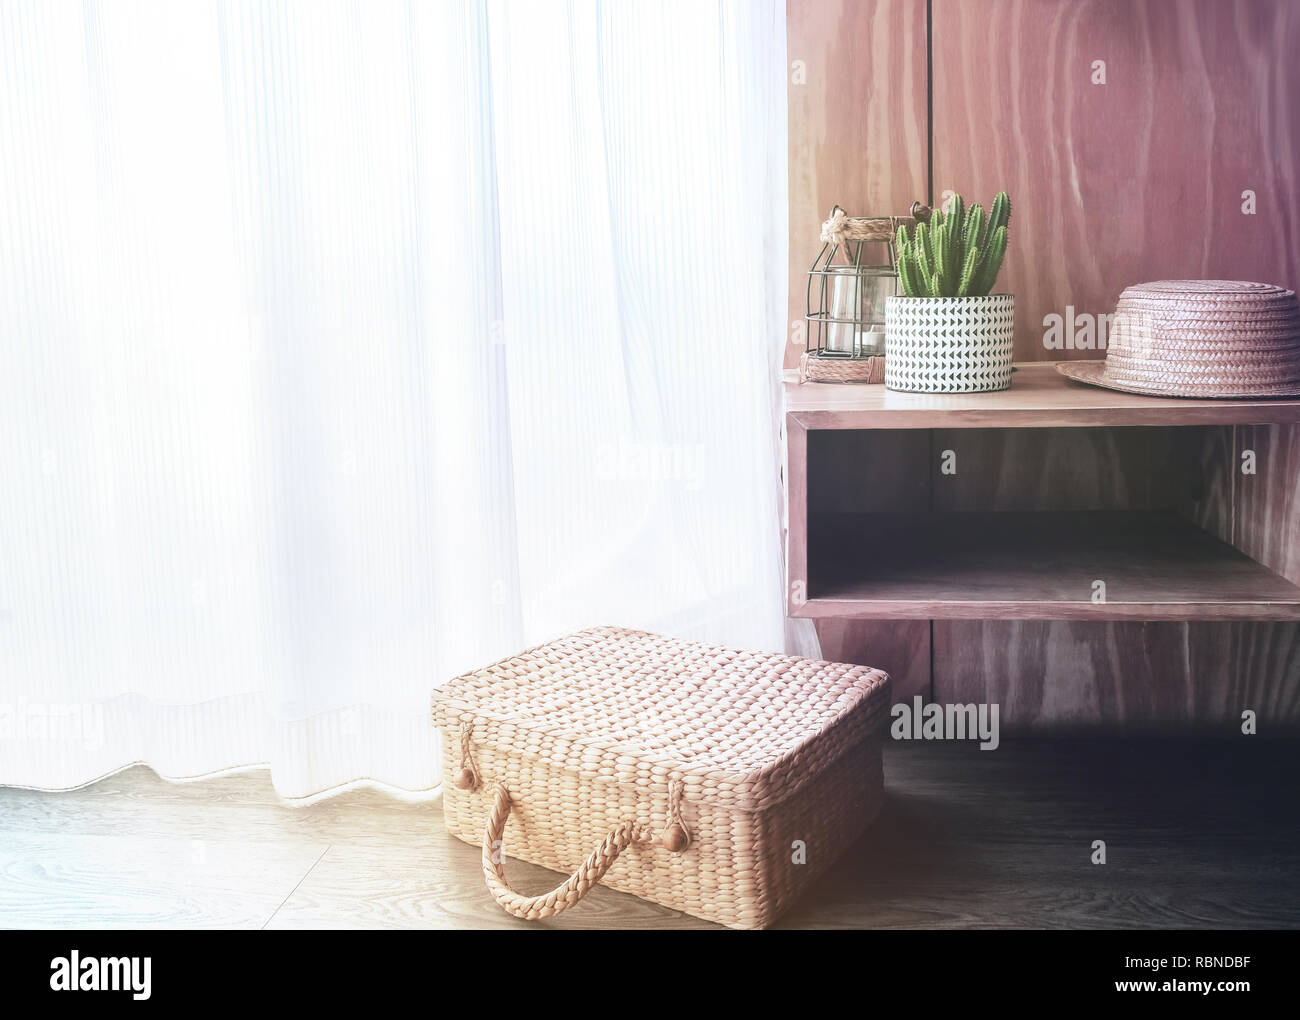 Decorated By Hat, Suitcase, Candle Light And Tree Pot. Interior Design  Concept